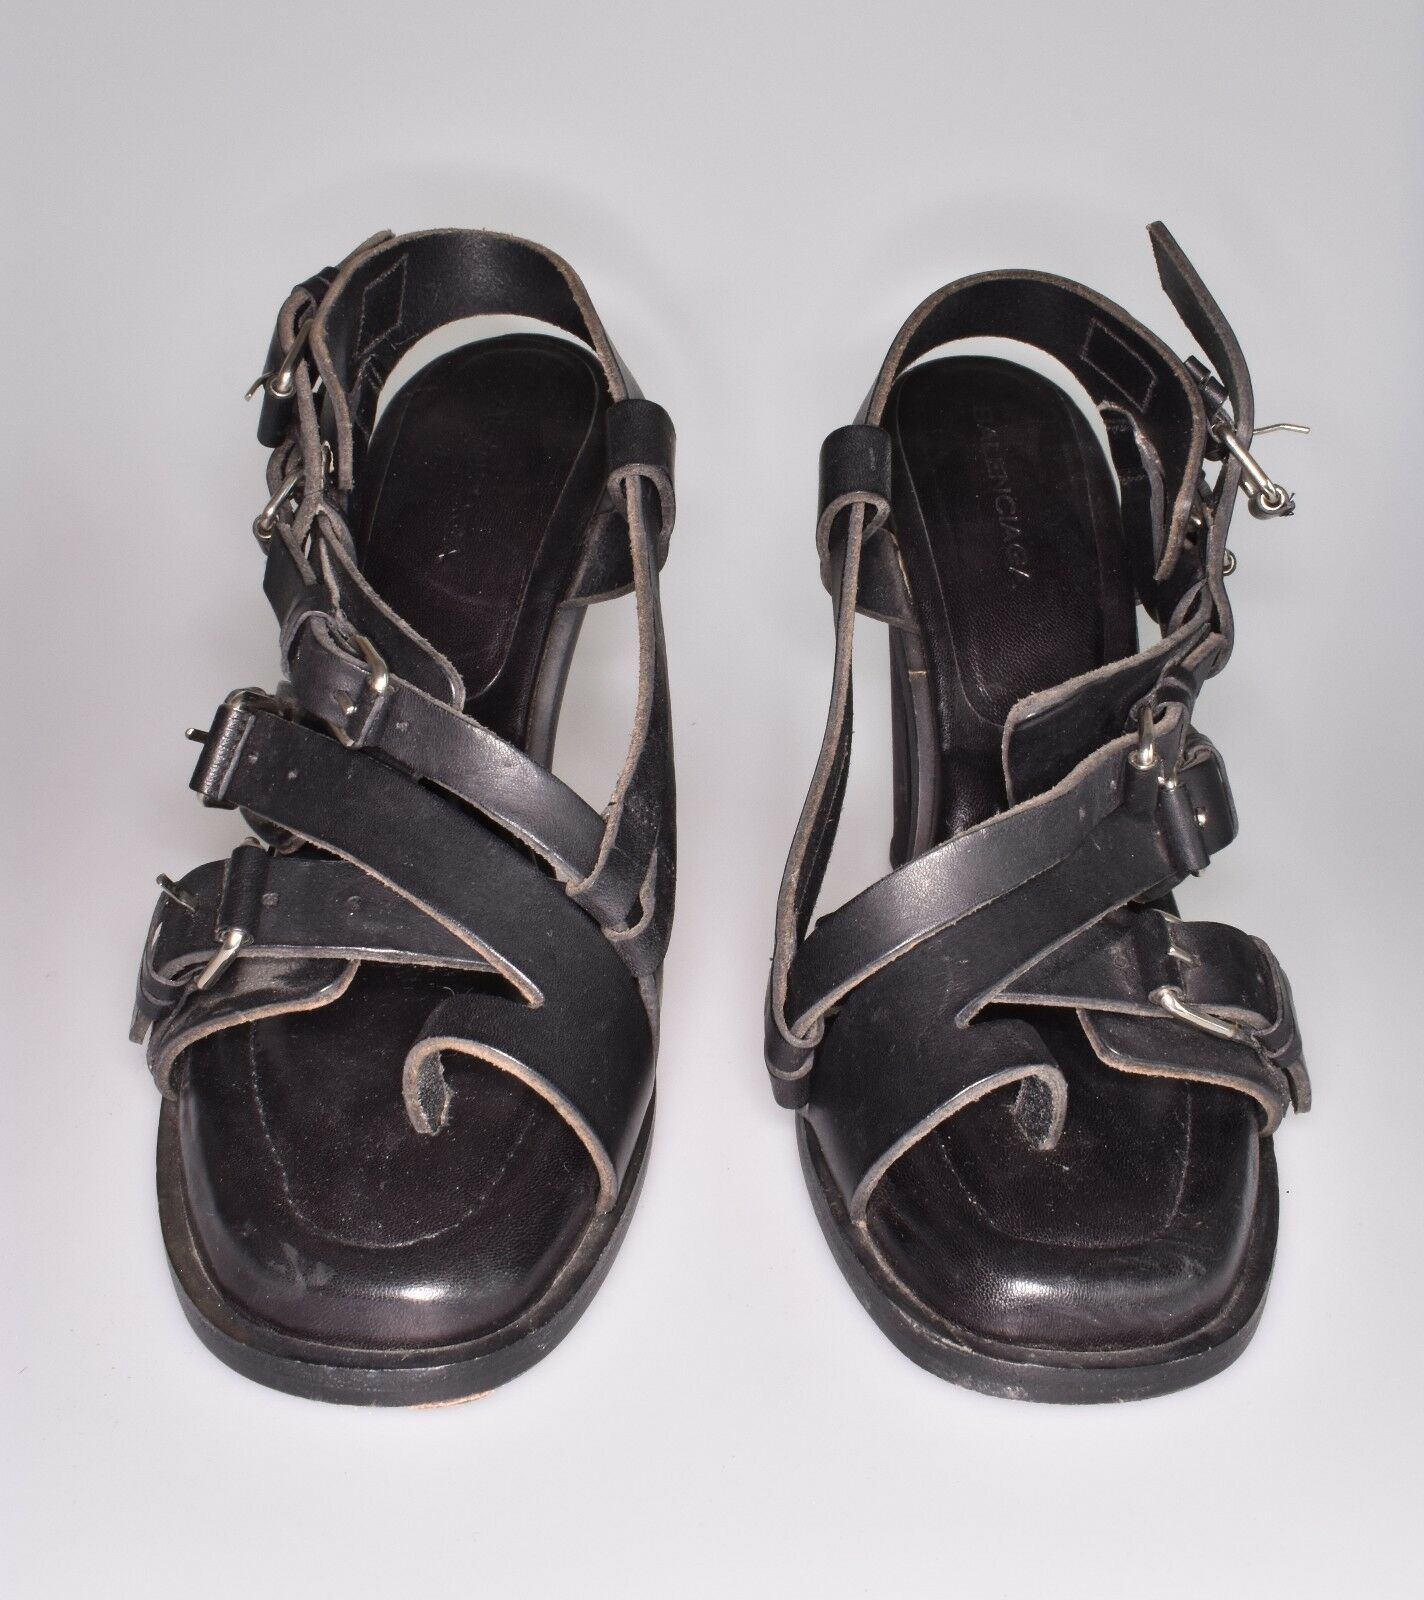 Balenciaga SANDALS Ghesquiere SS 2003 SANDALS Balenciaga SHOE SCARPE SZ 41 Amazing Collector item!!! b64c3a